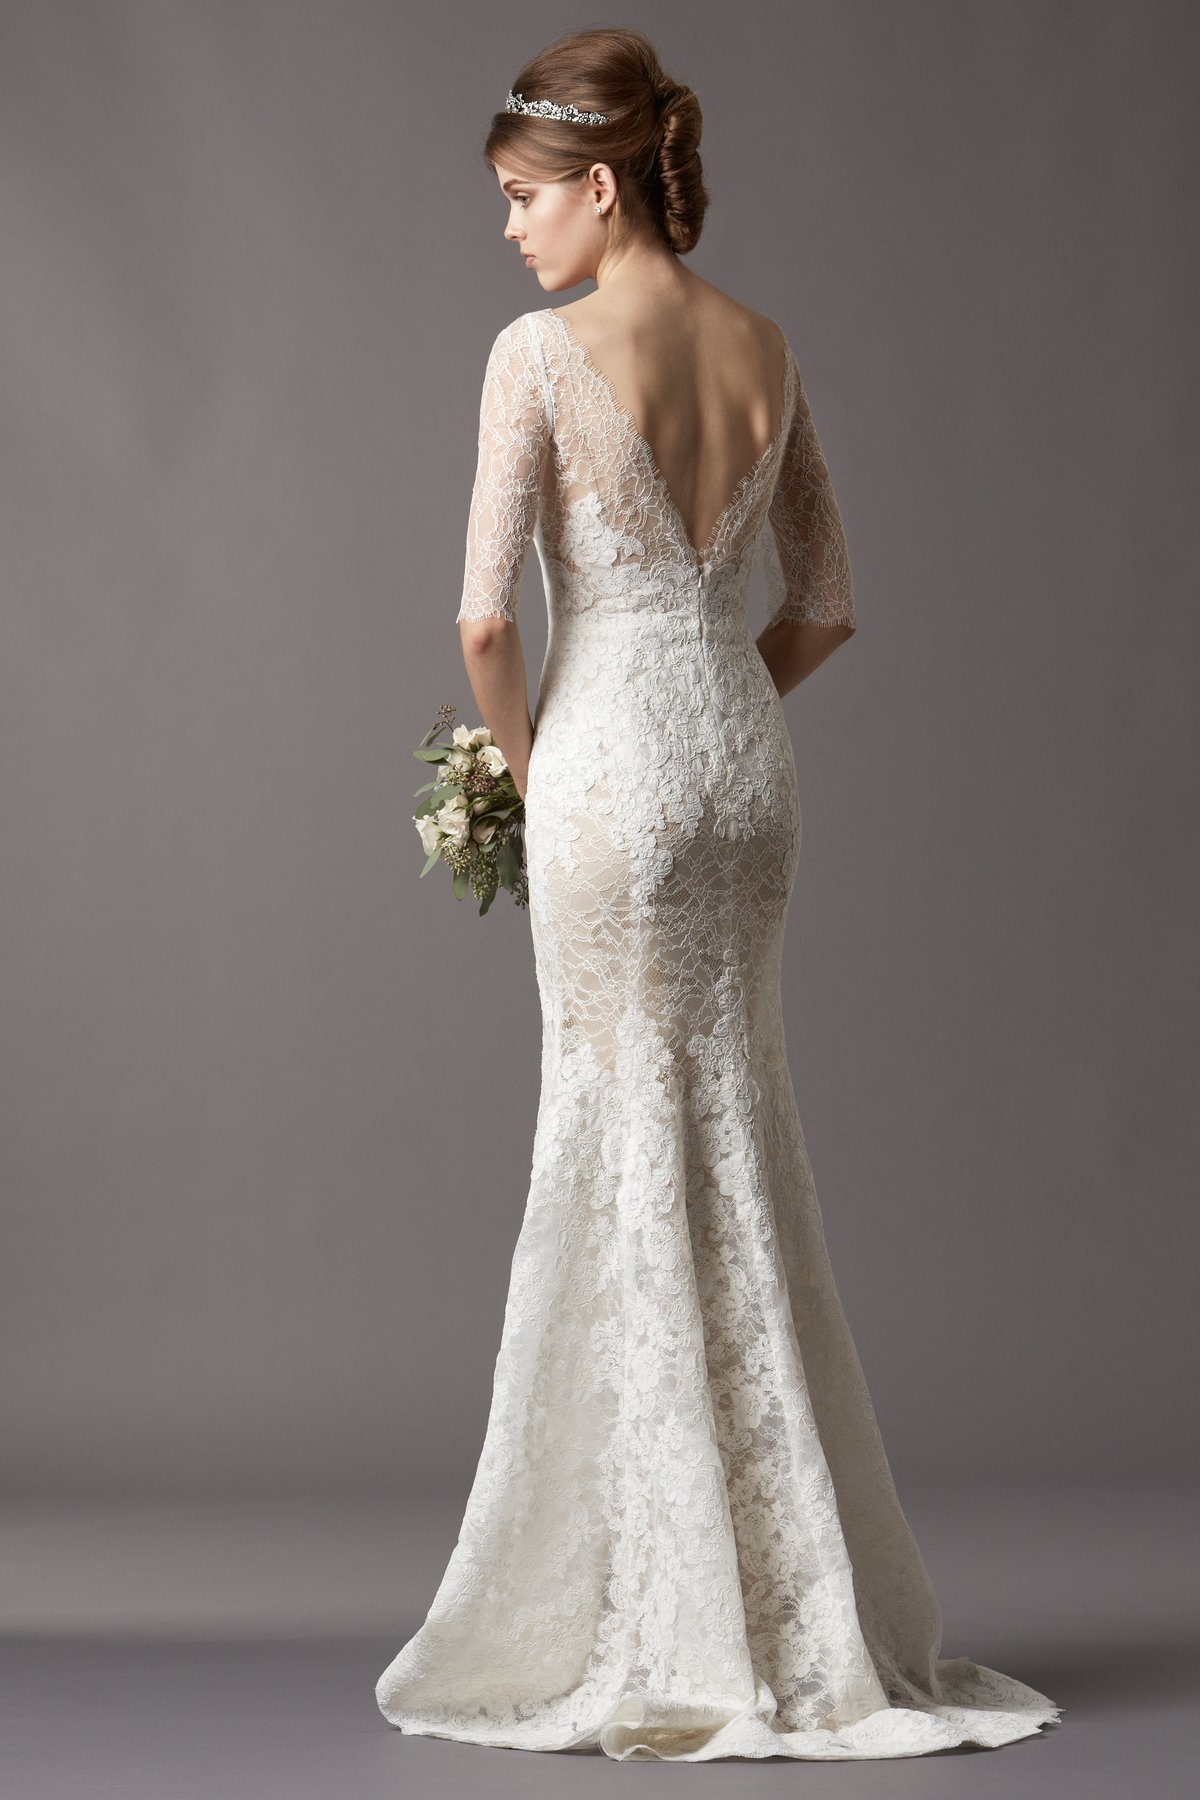 2014  2015 Wedding Dress Trends  Lace Sleeves